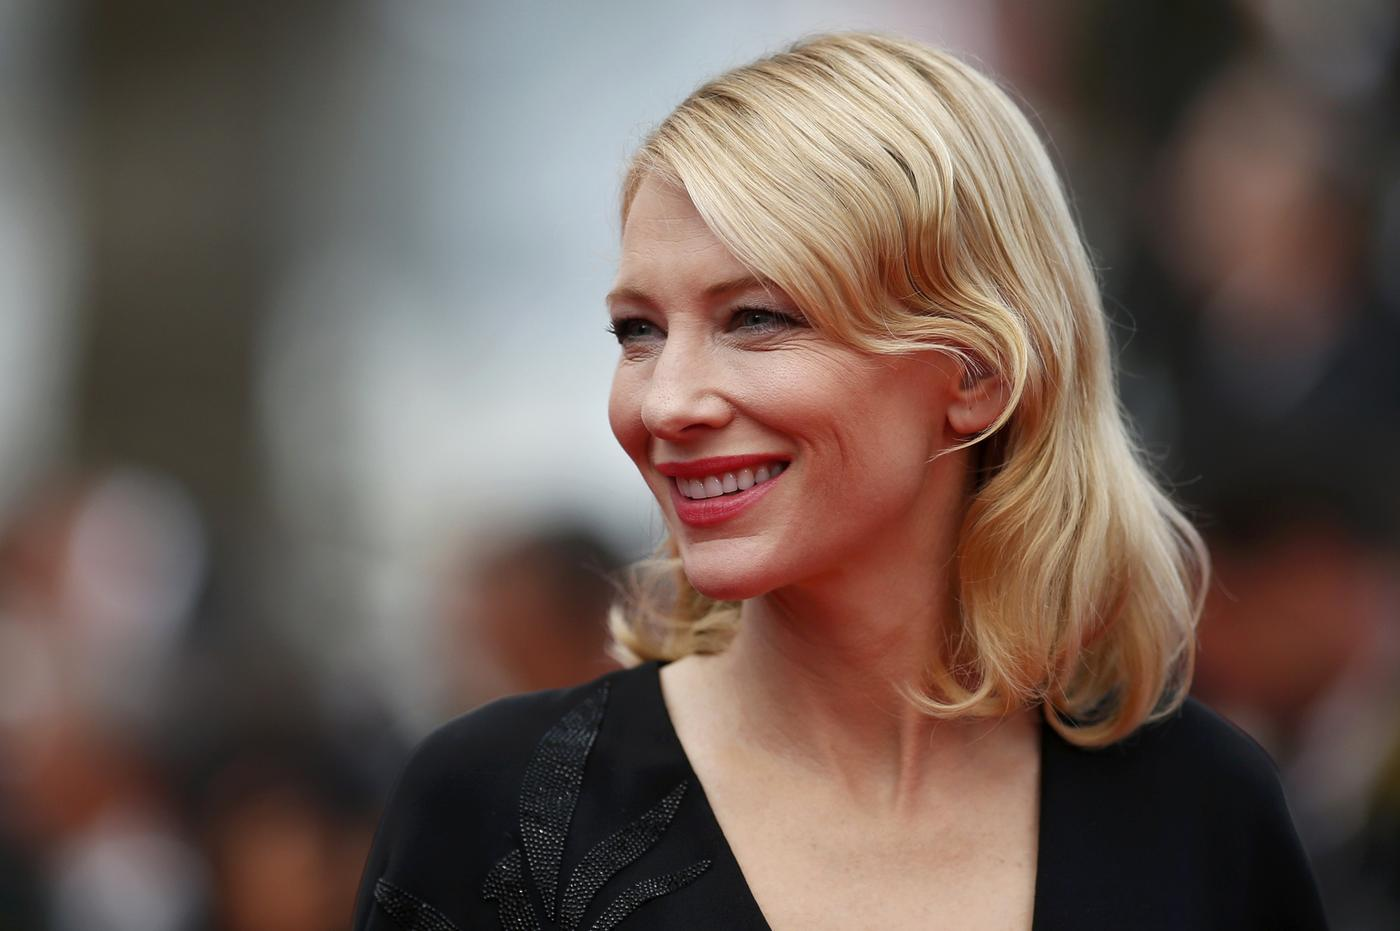 10 of the best moments from Cannes Film Festival 2015 so far